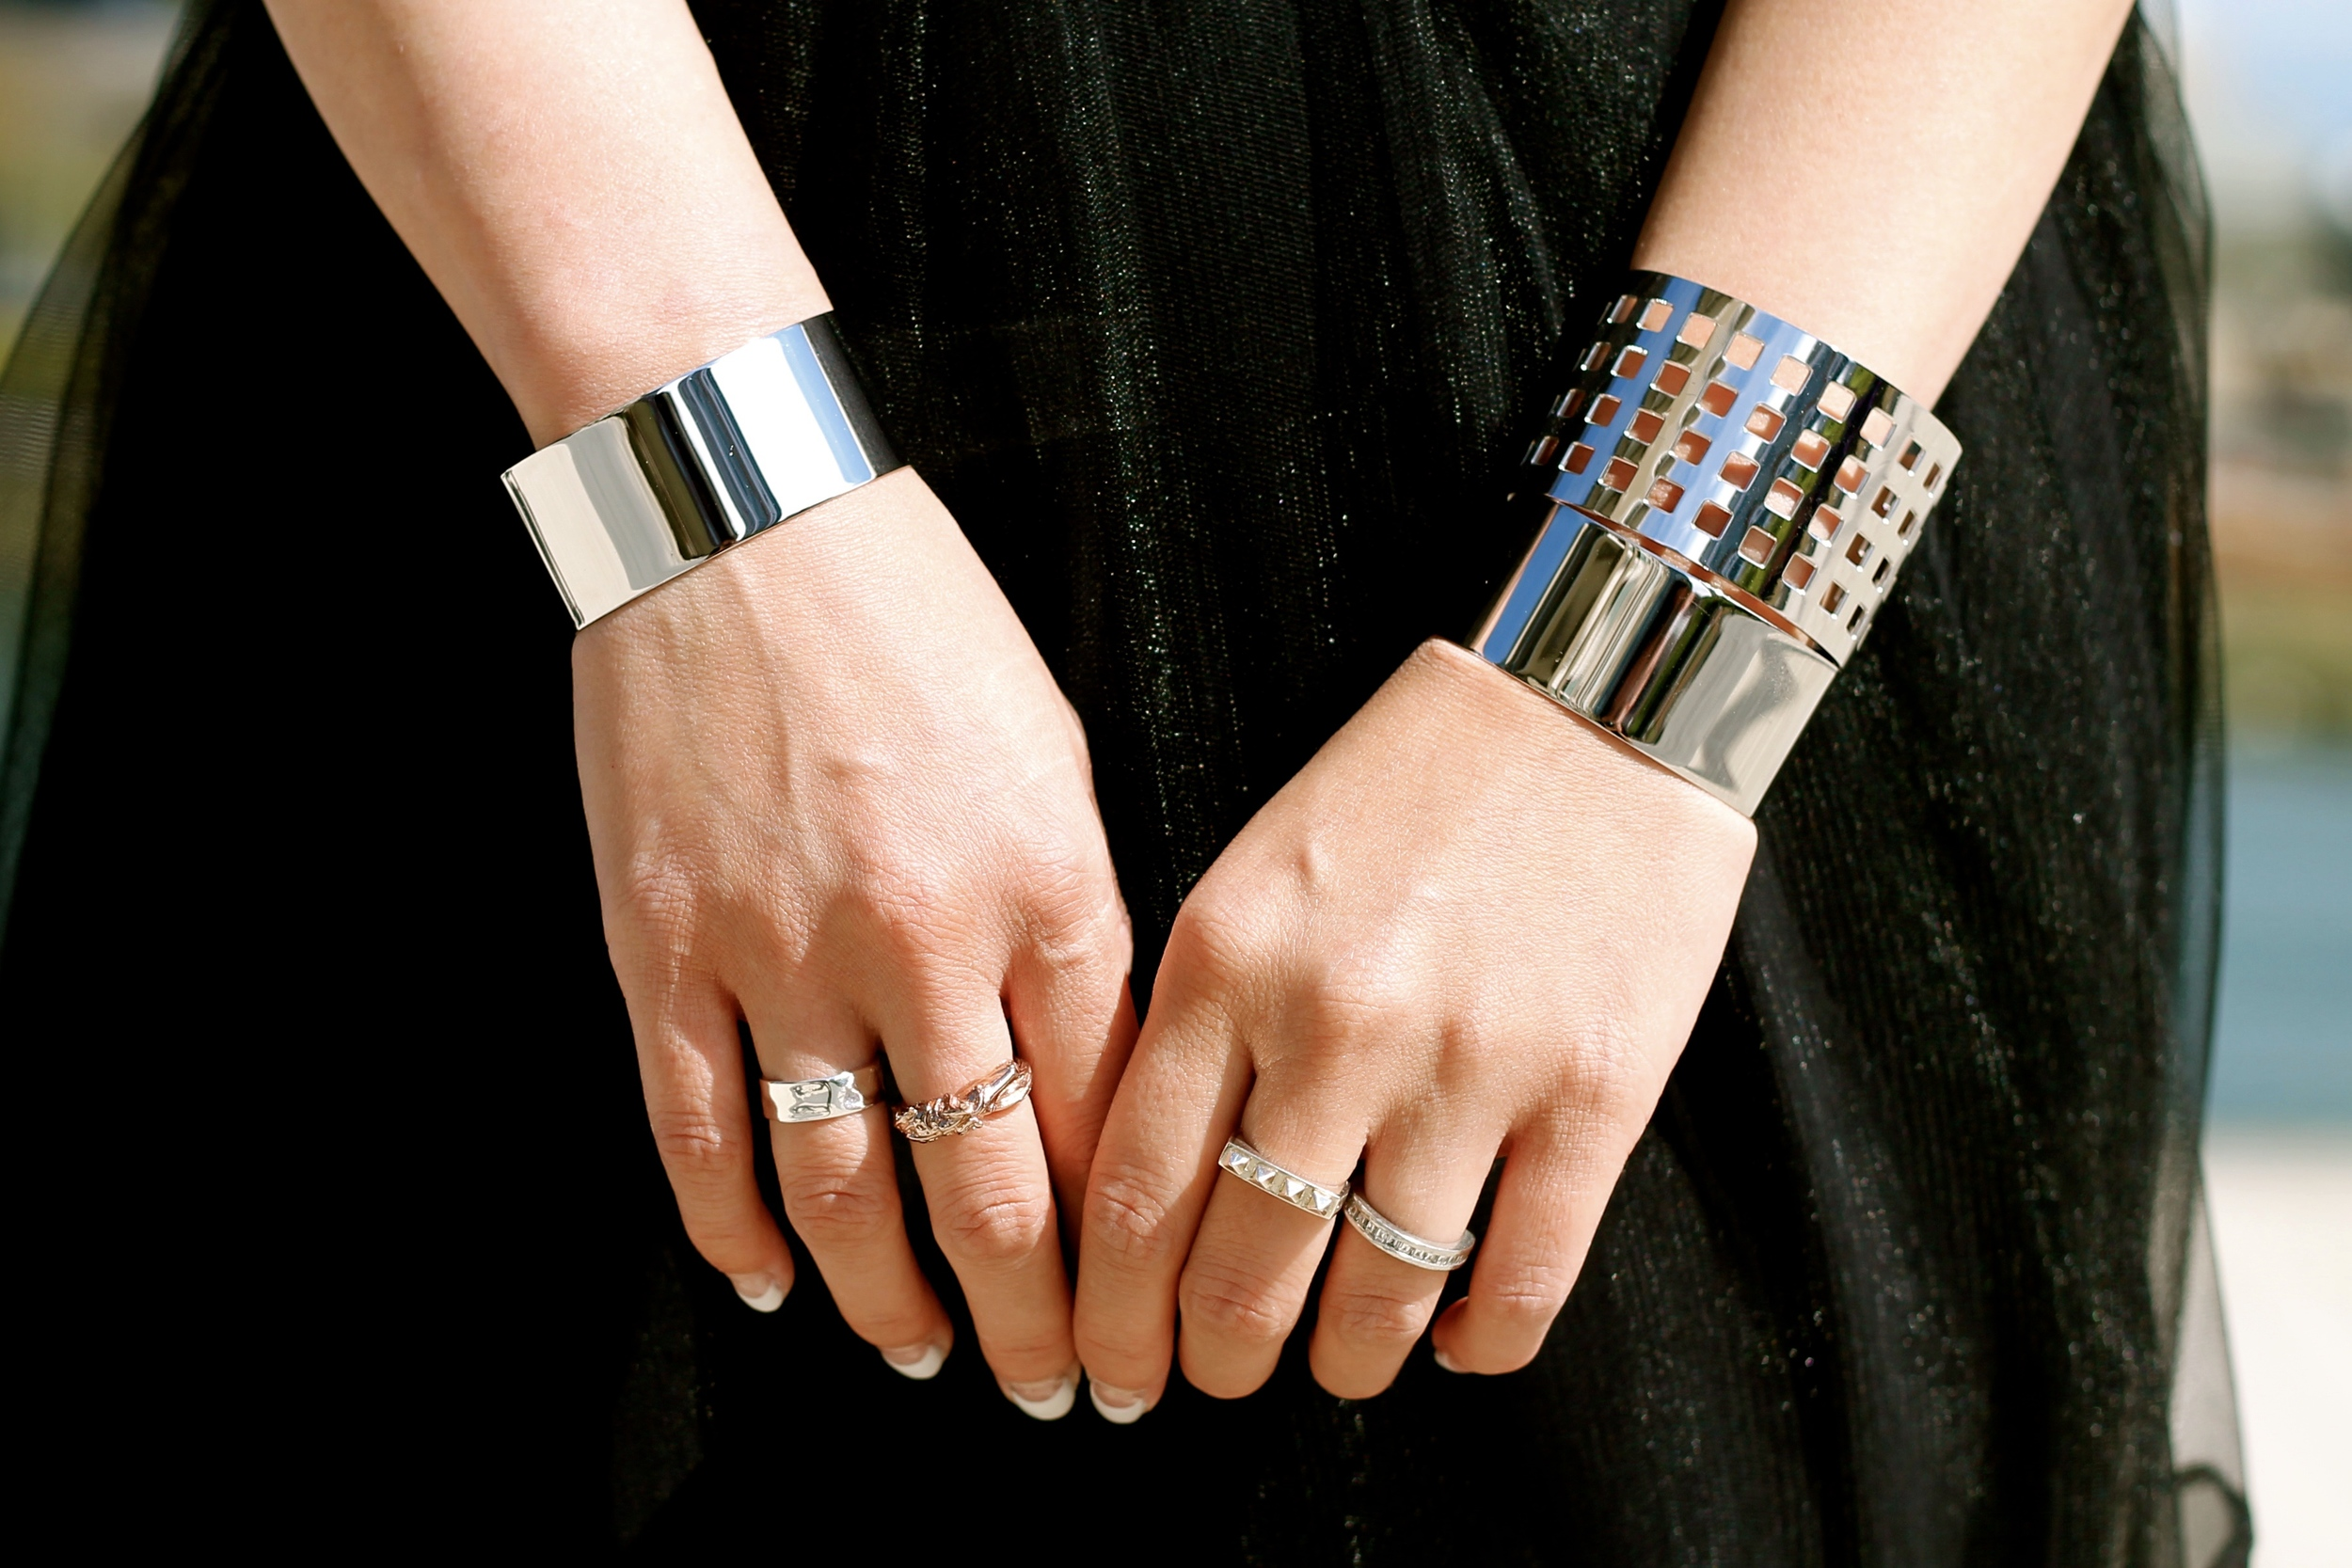 Svelte Metals cuffs and rings, my own rings